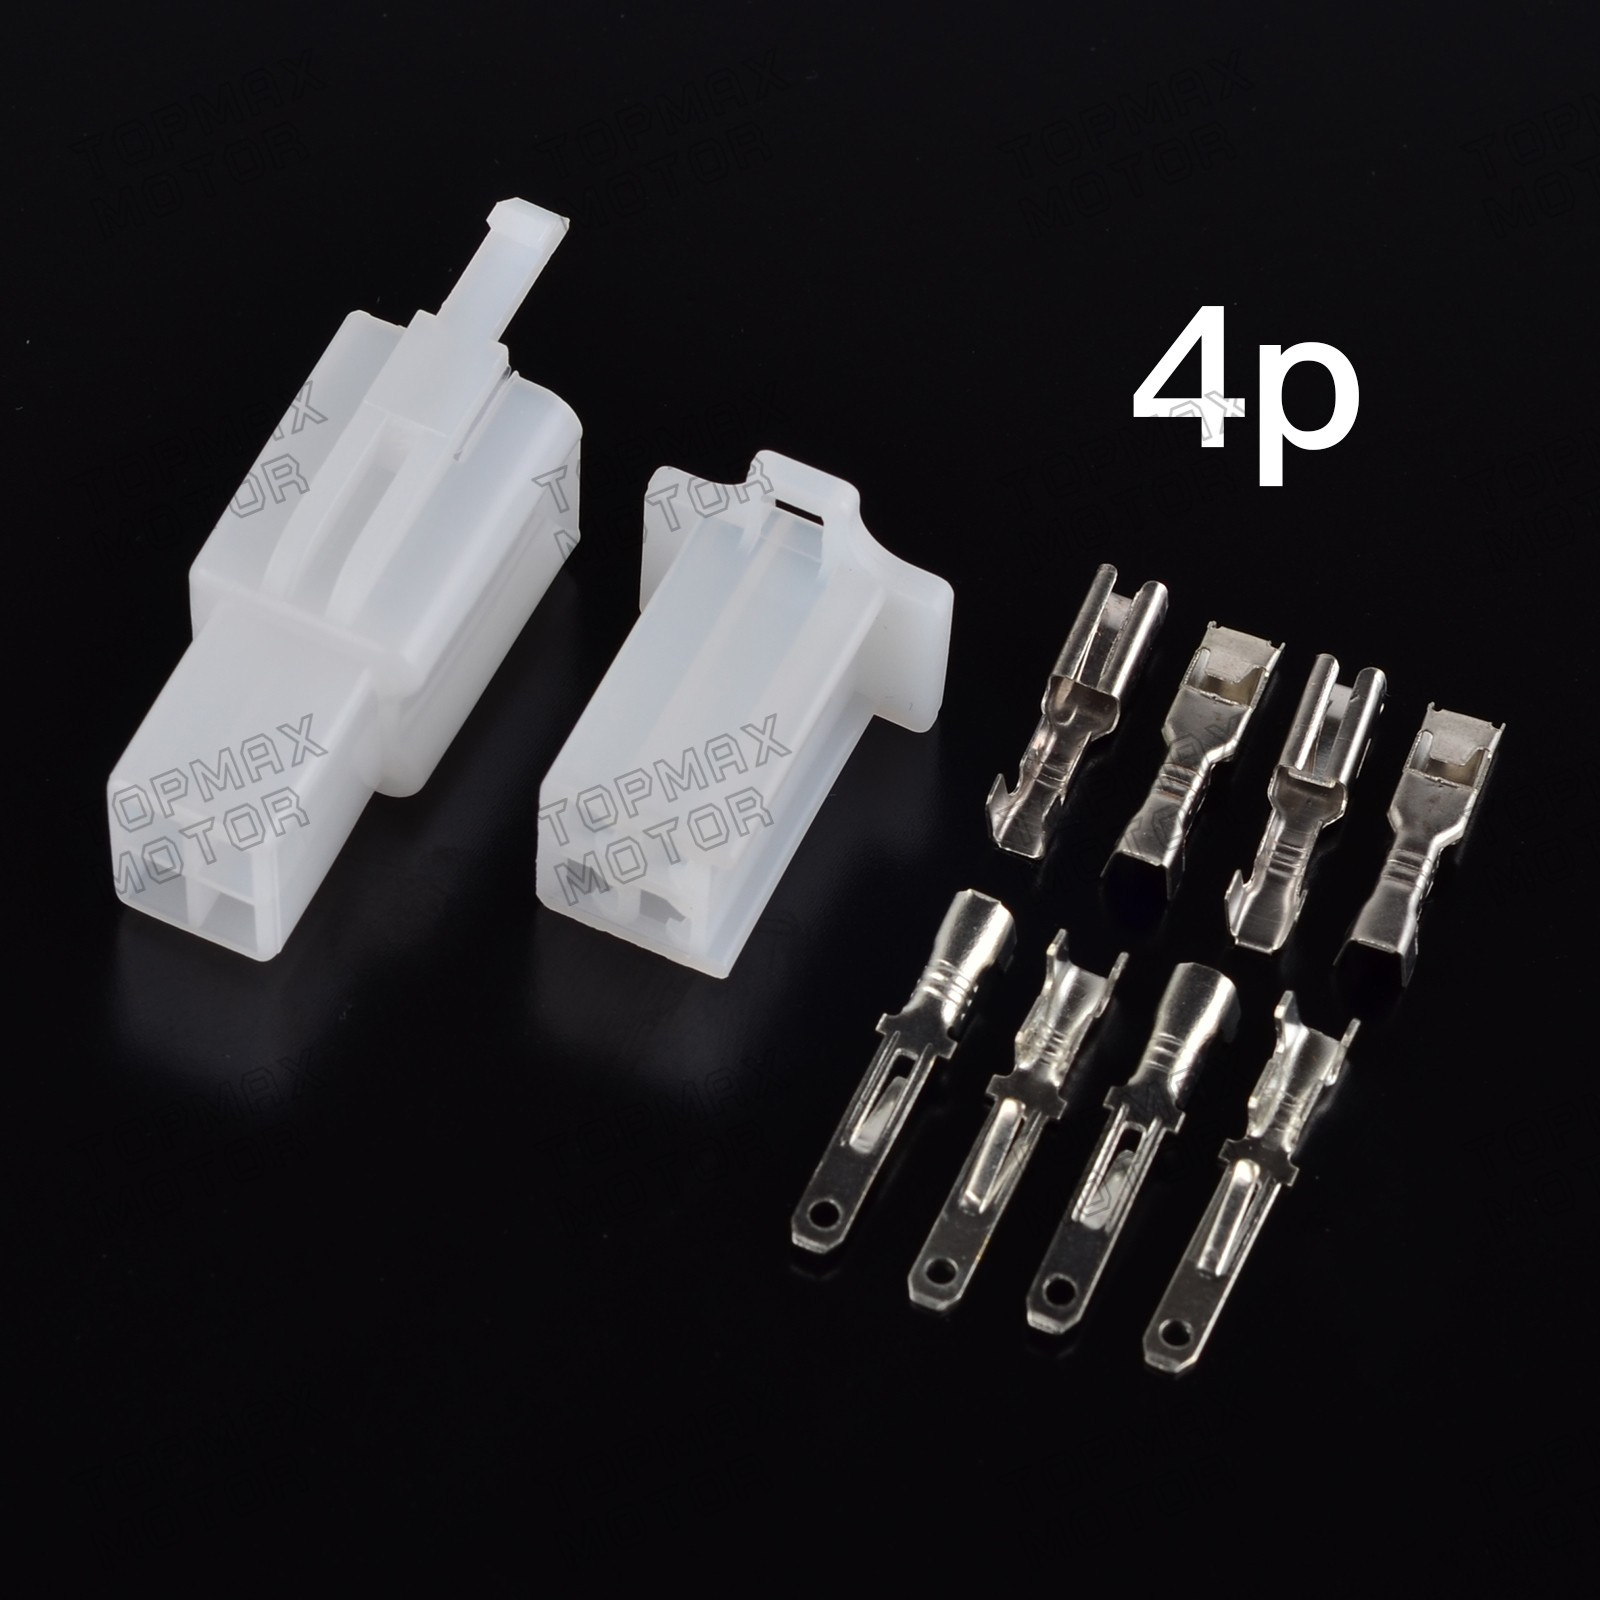 40 X Electrical Wire Terminal Connector Insulated For Kawasaki ...